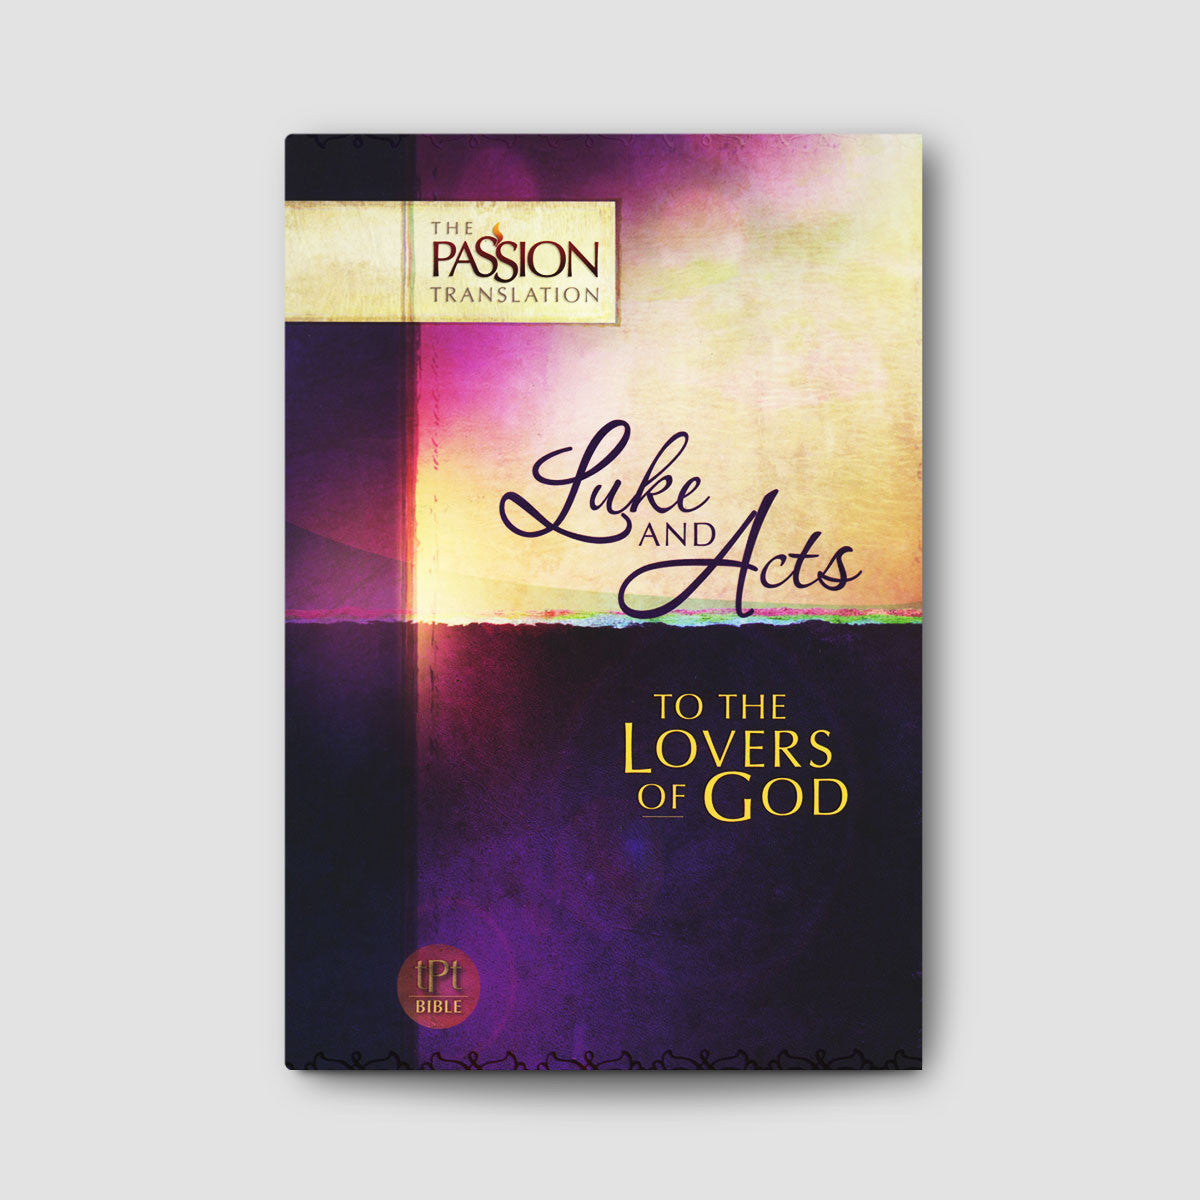 Luke and Acts: To the Lovers of God Book (The Passion Translation)